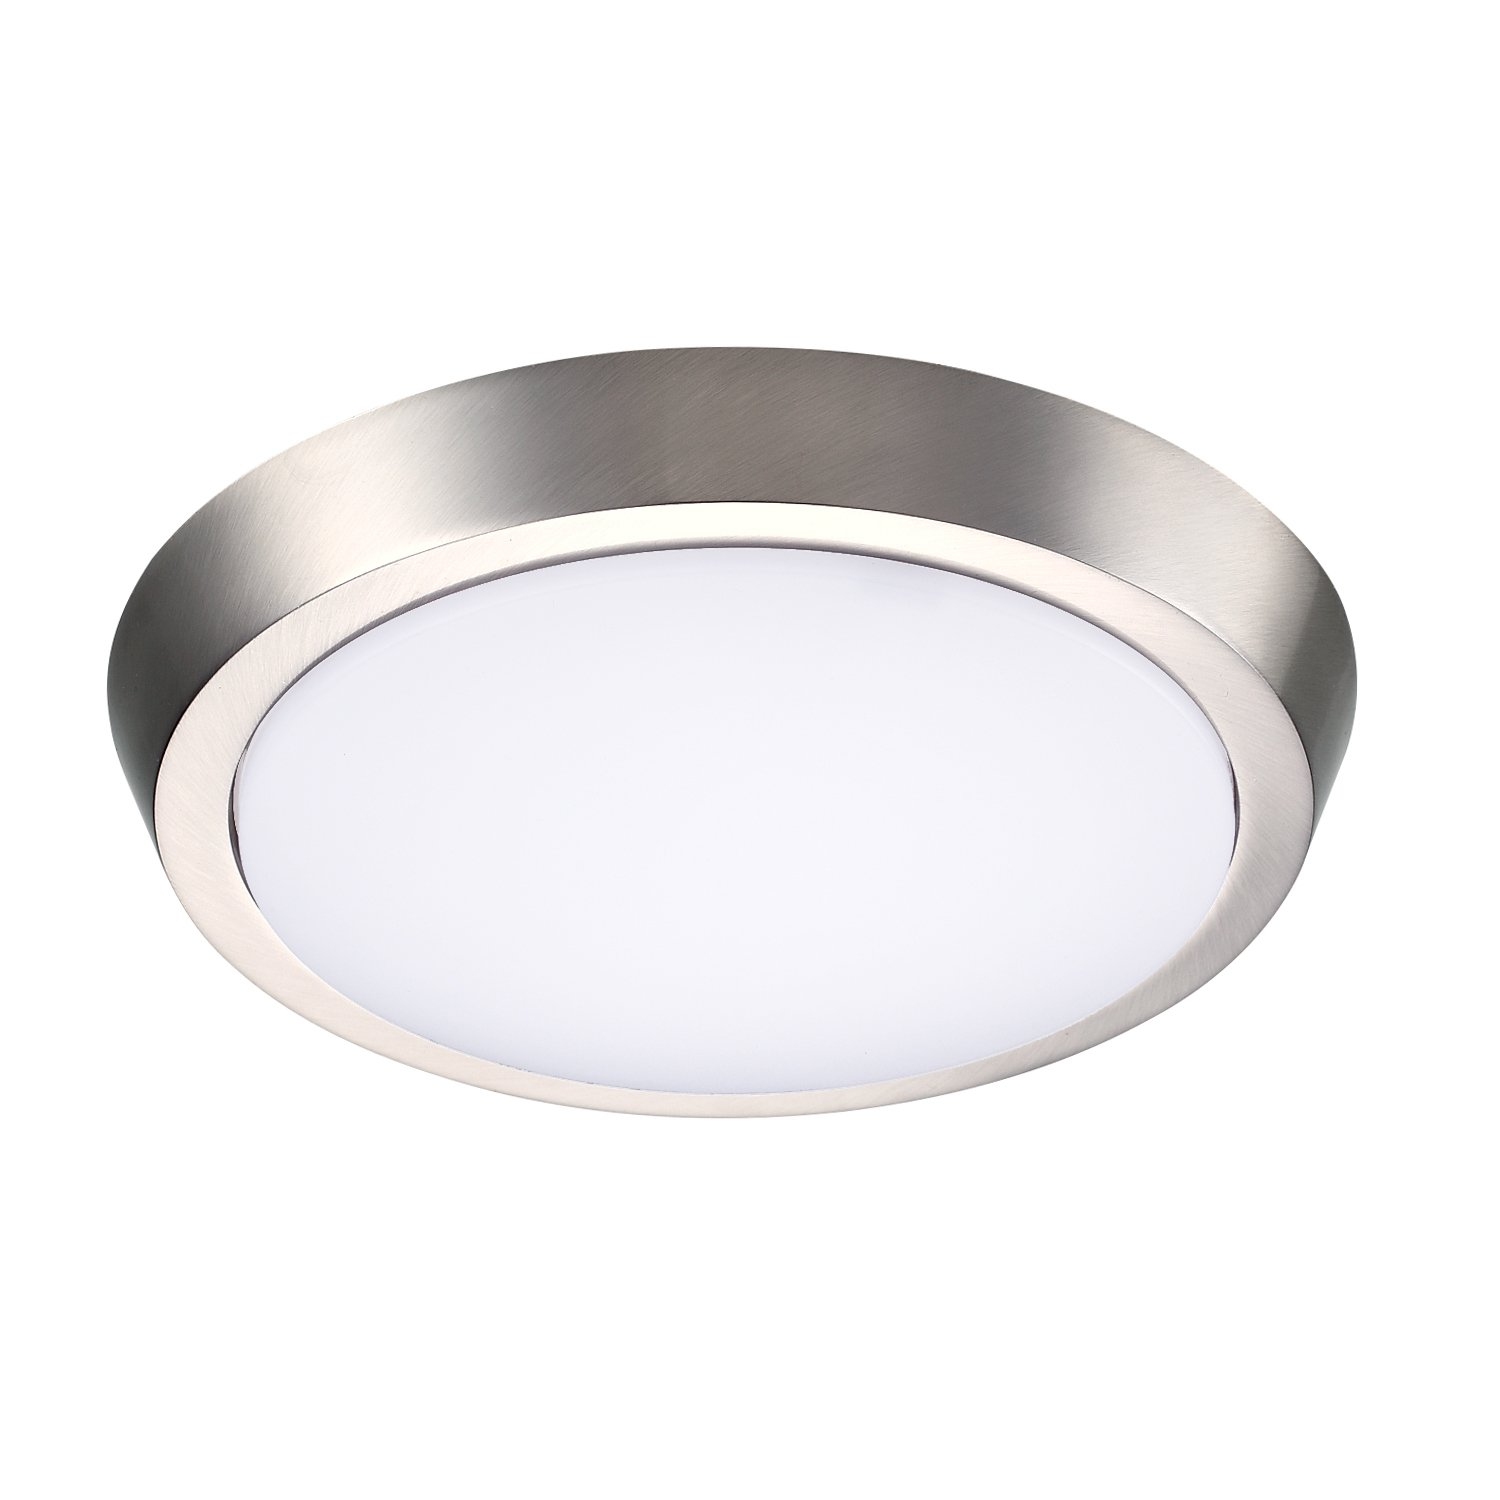 GetInLight 9 Inch Flush Mount LED Ceiling Light